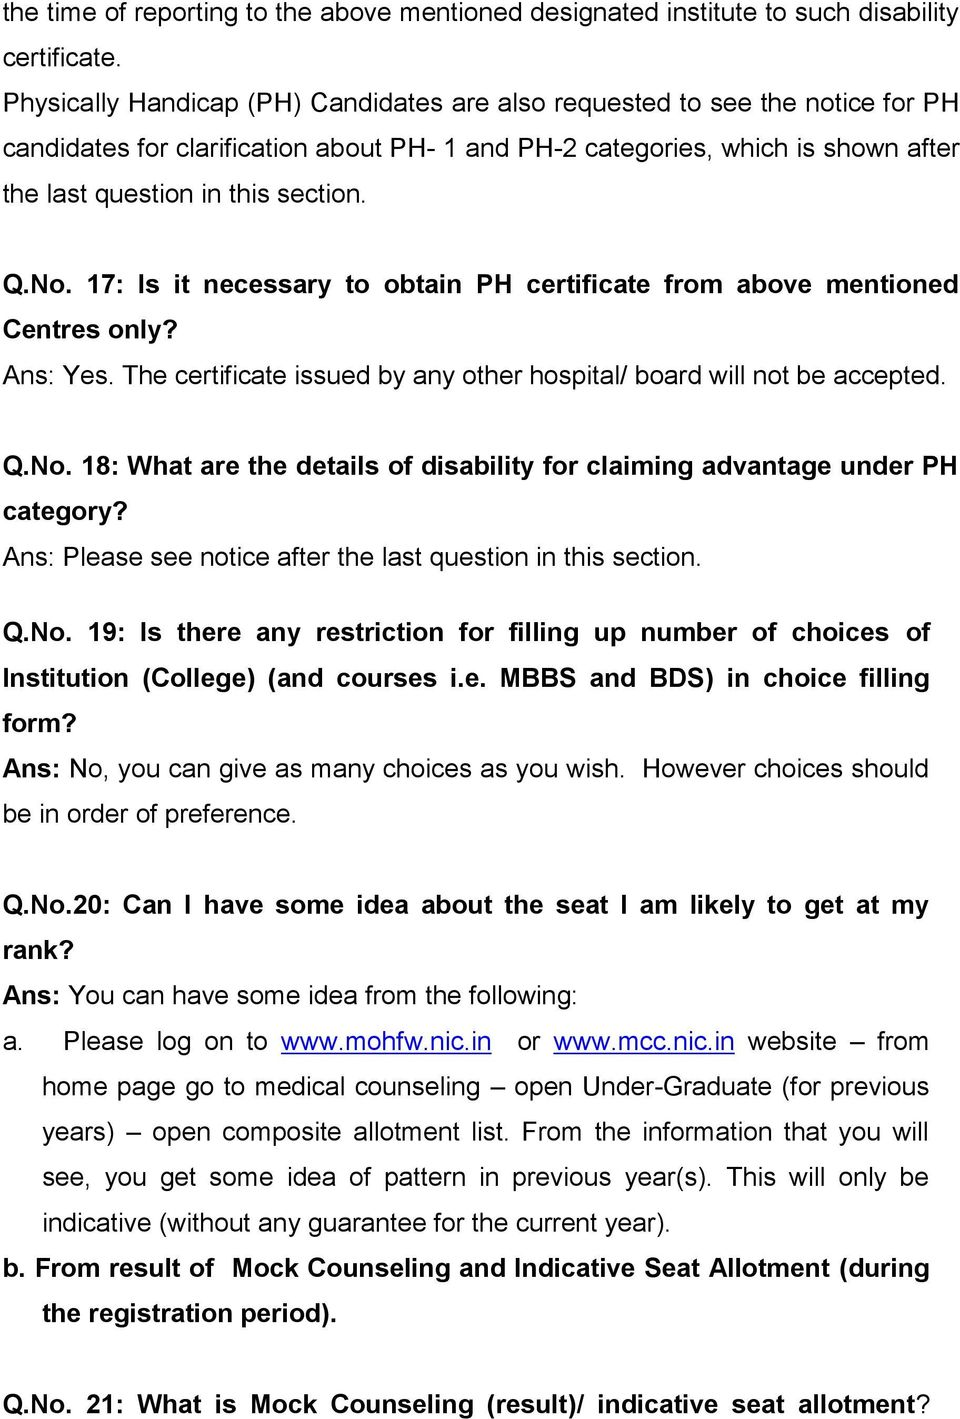 No. 17: Is it necessary to obtain PH certificate from above mentioned Centres only? Ans: Yes. The certificate issued by any other hospital/ board will not be accepted. Q.No. 18: What are the details of disability for claiming advantage under PH category?